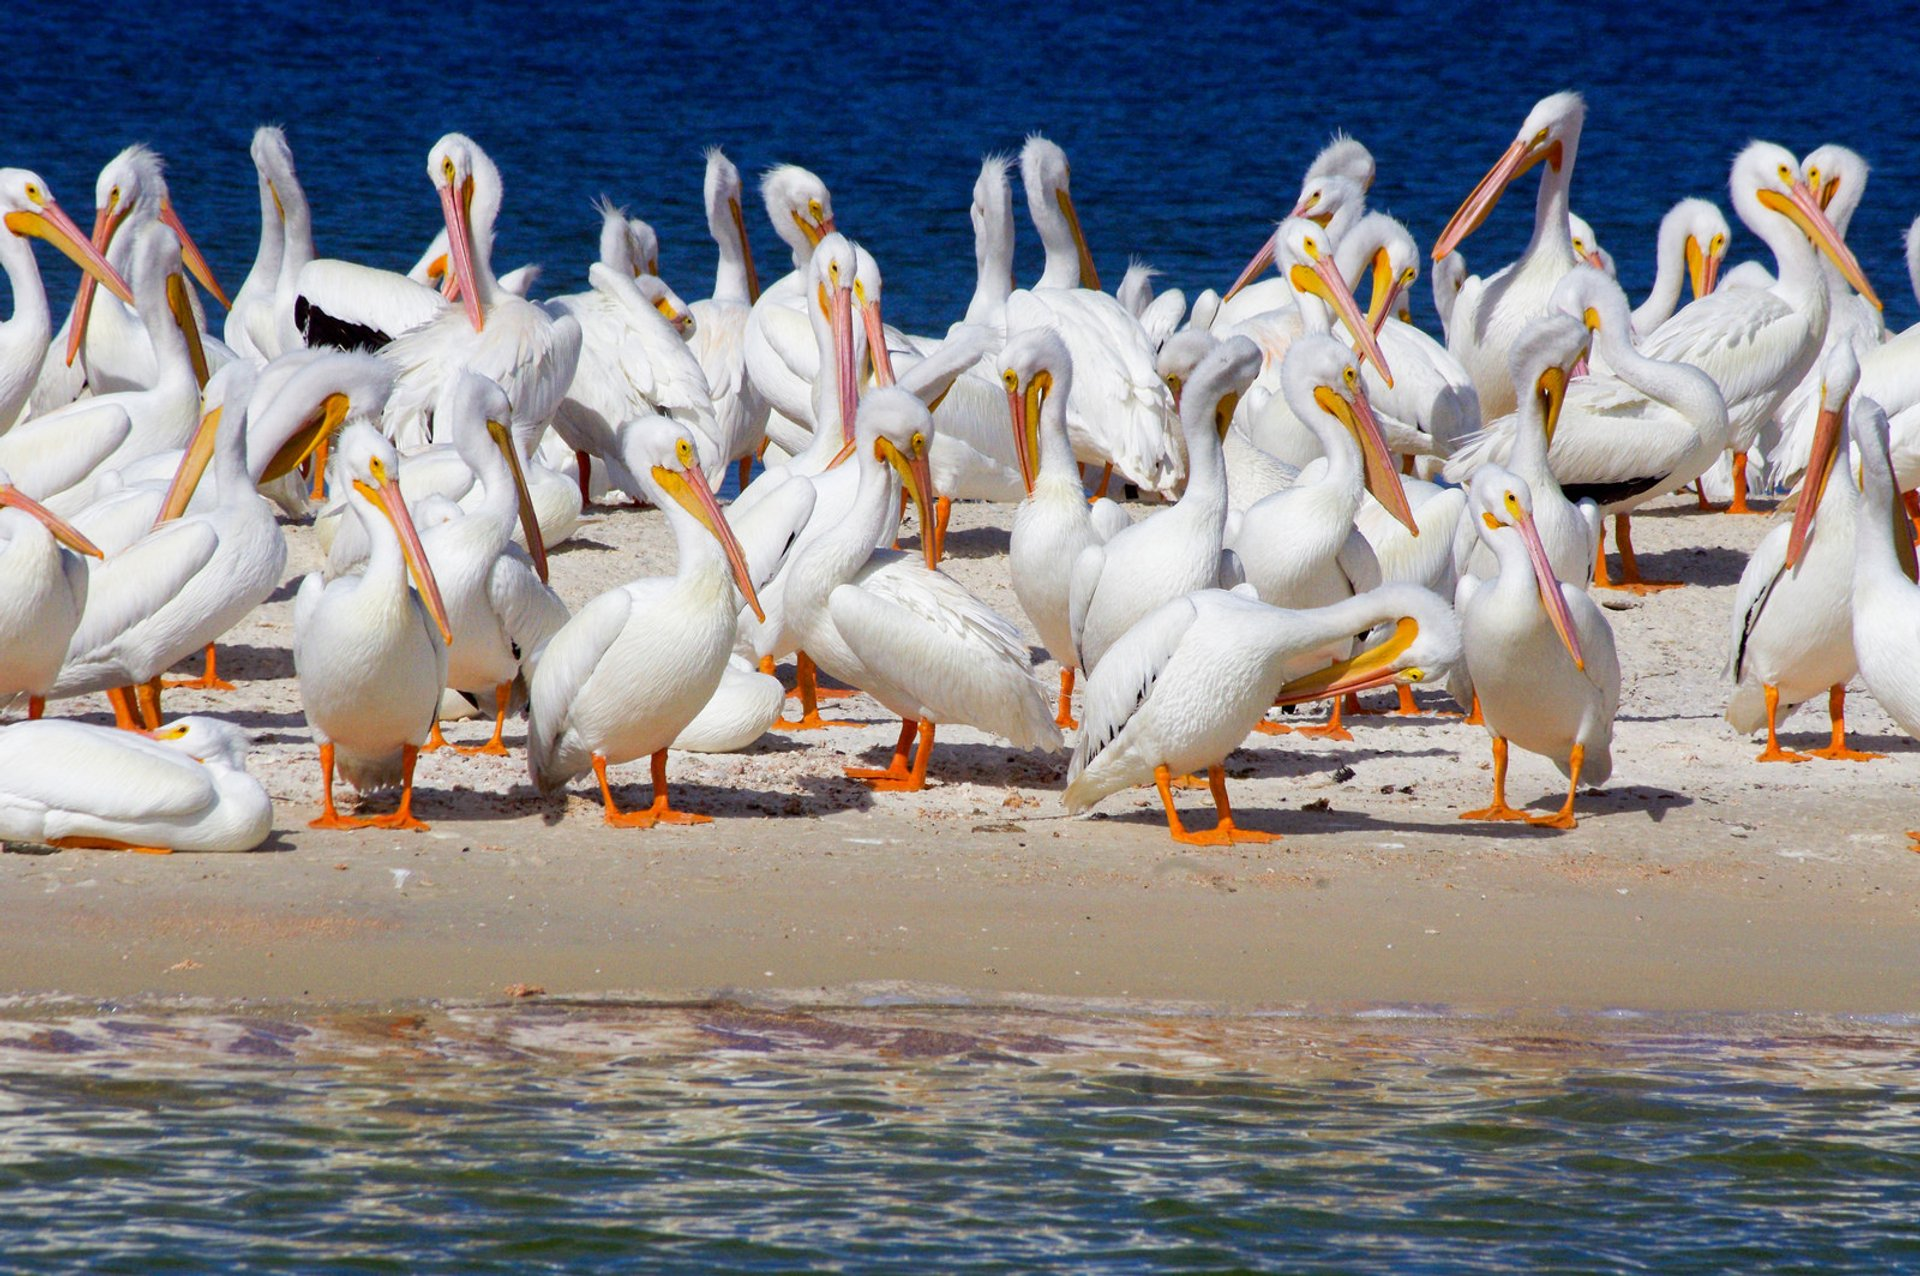 White Pelicans in Florida 2020 - Best Time